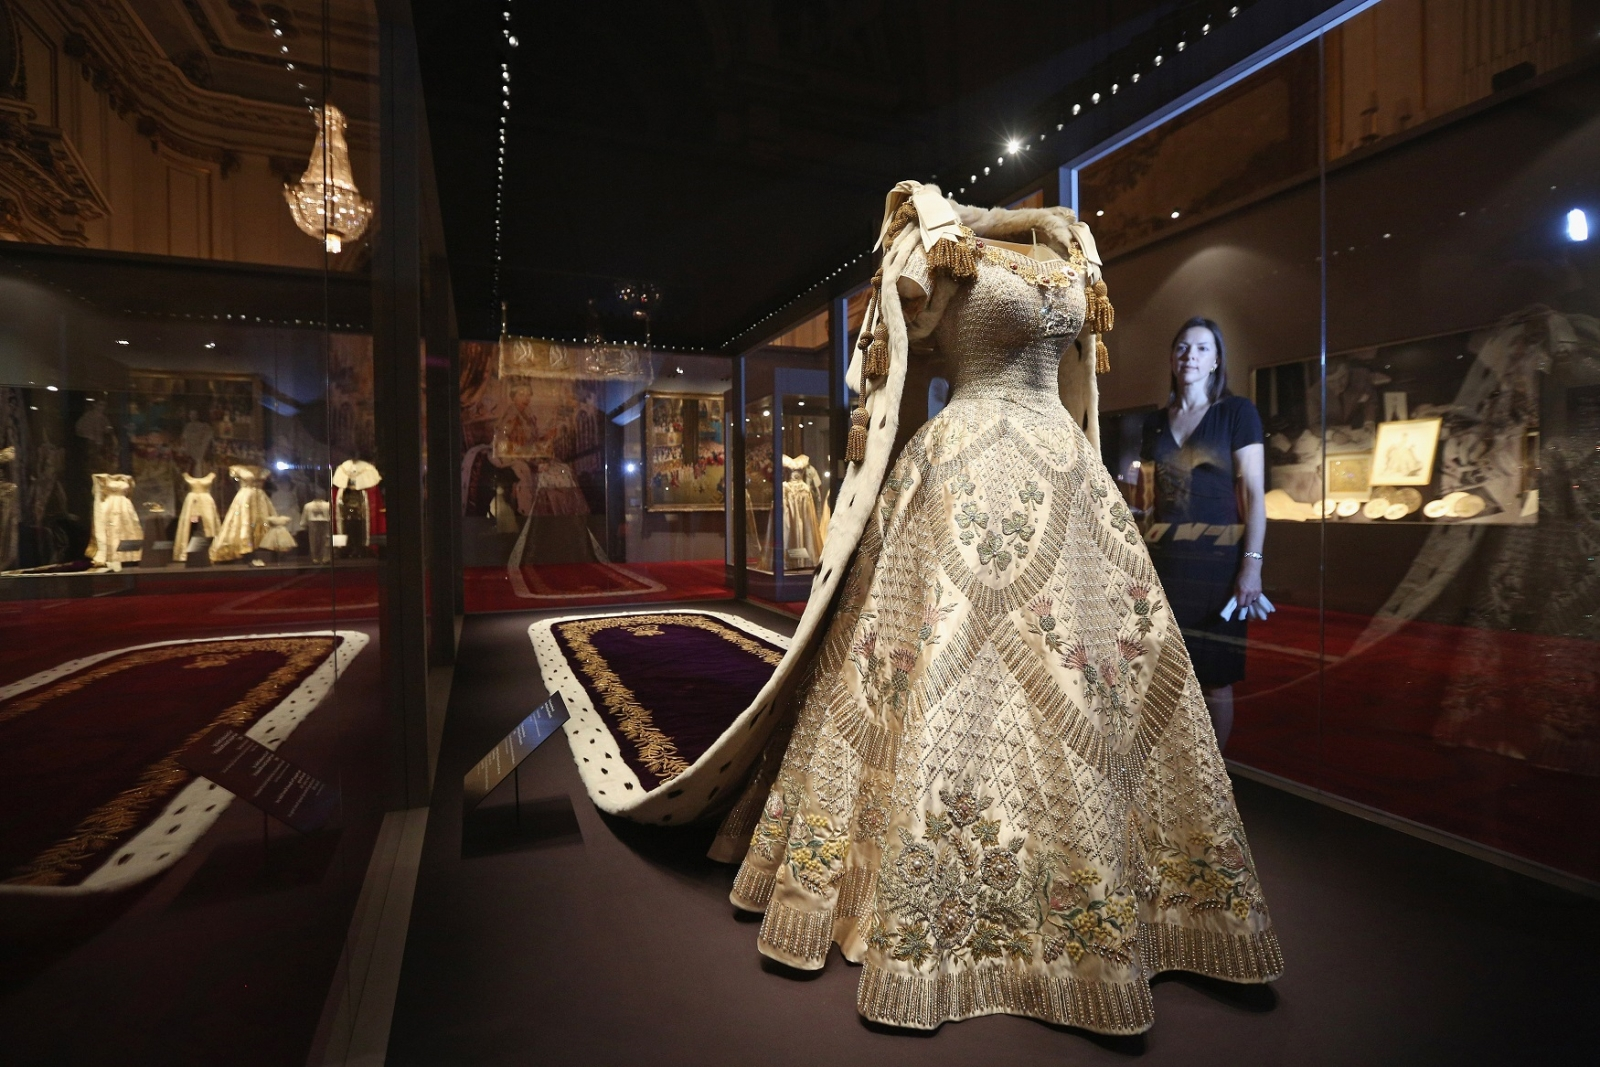 Queen Elizabeth gown